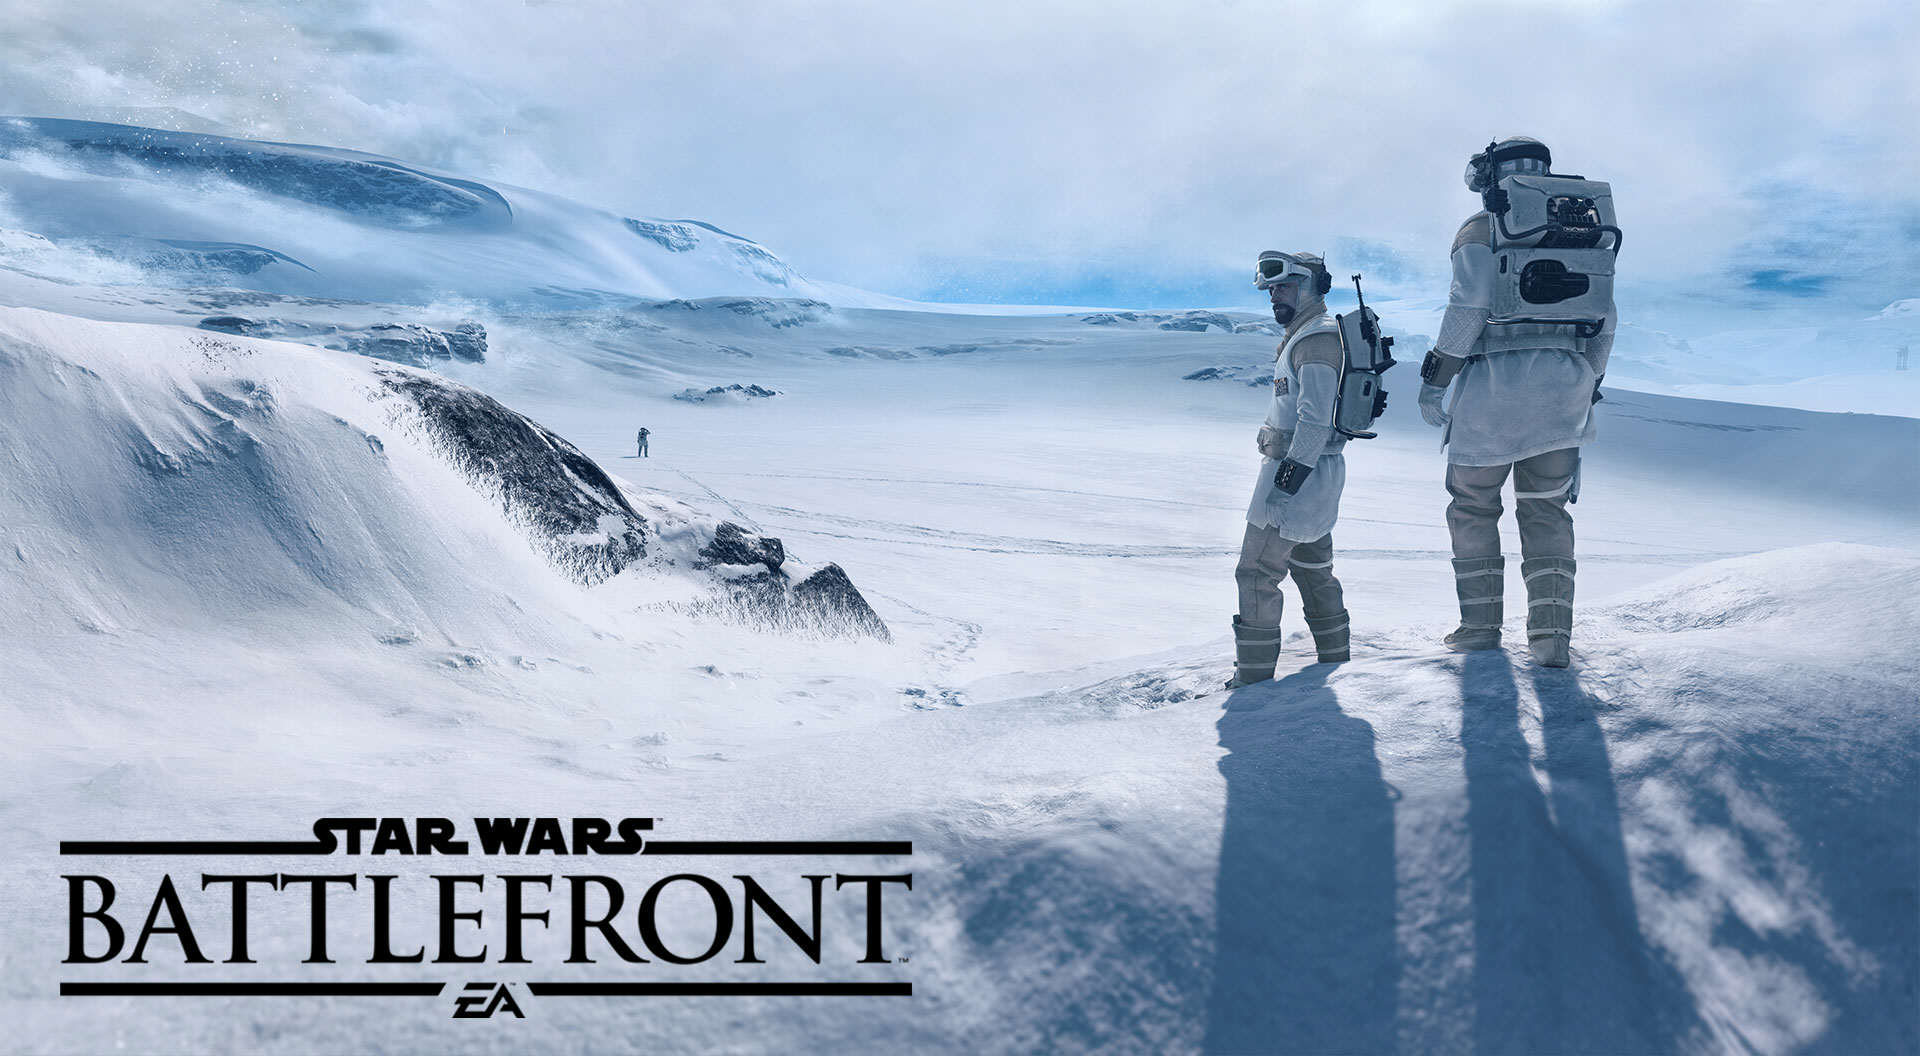 Star Wars Battlefront Gets A Major Update, New Maps, And More rendition1.img  1